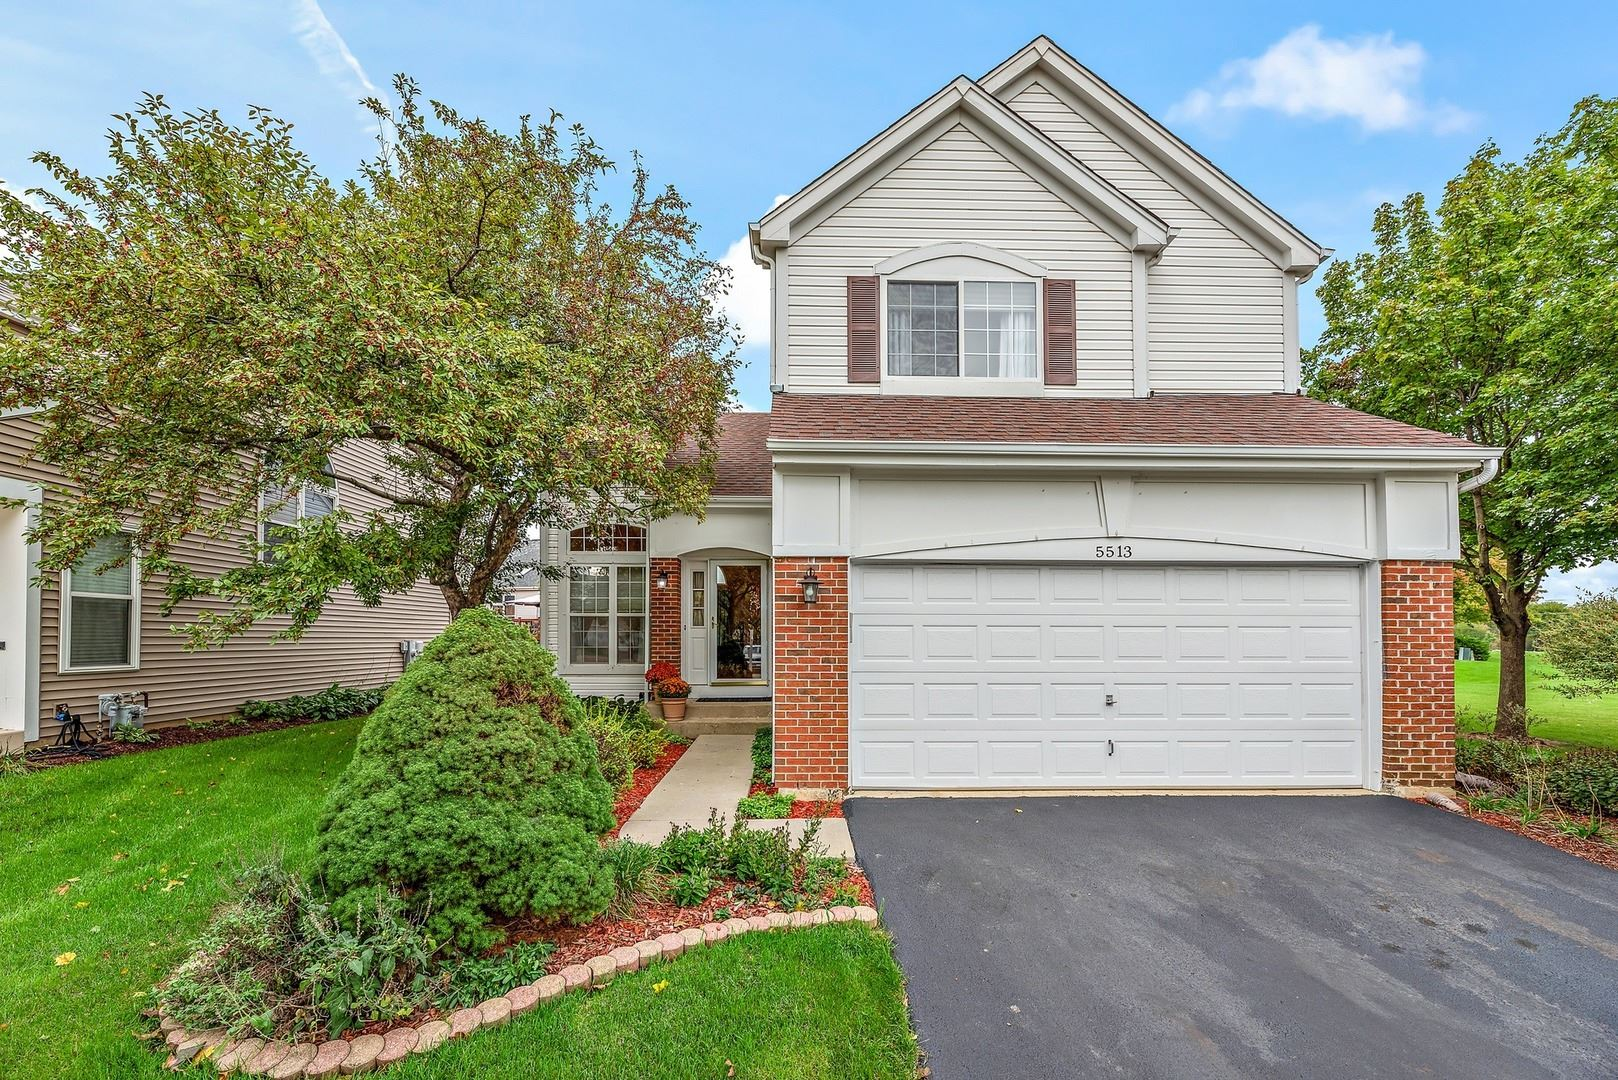 5513 Chancery Way, Lake in the Hills, IL 60156 - #: 11239207